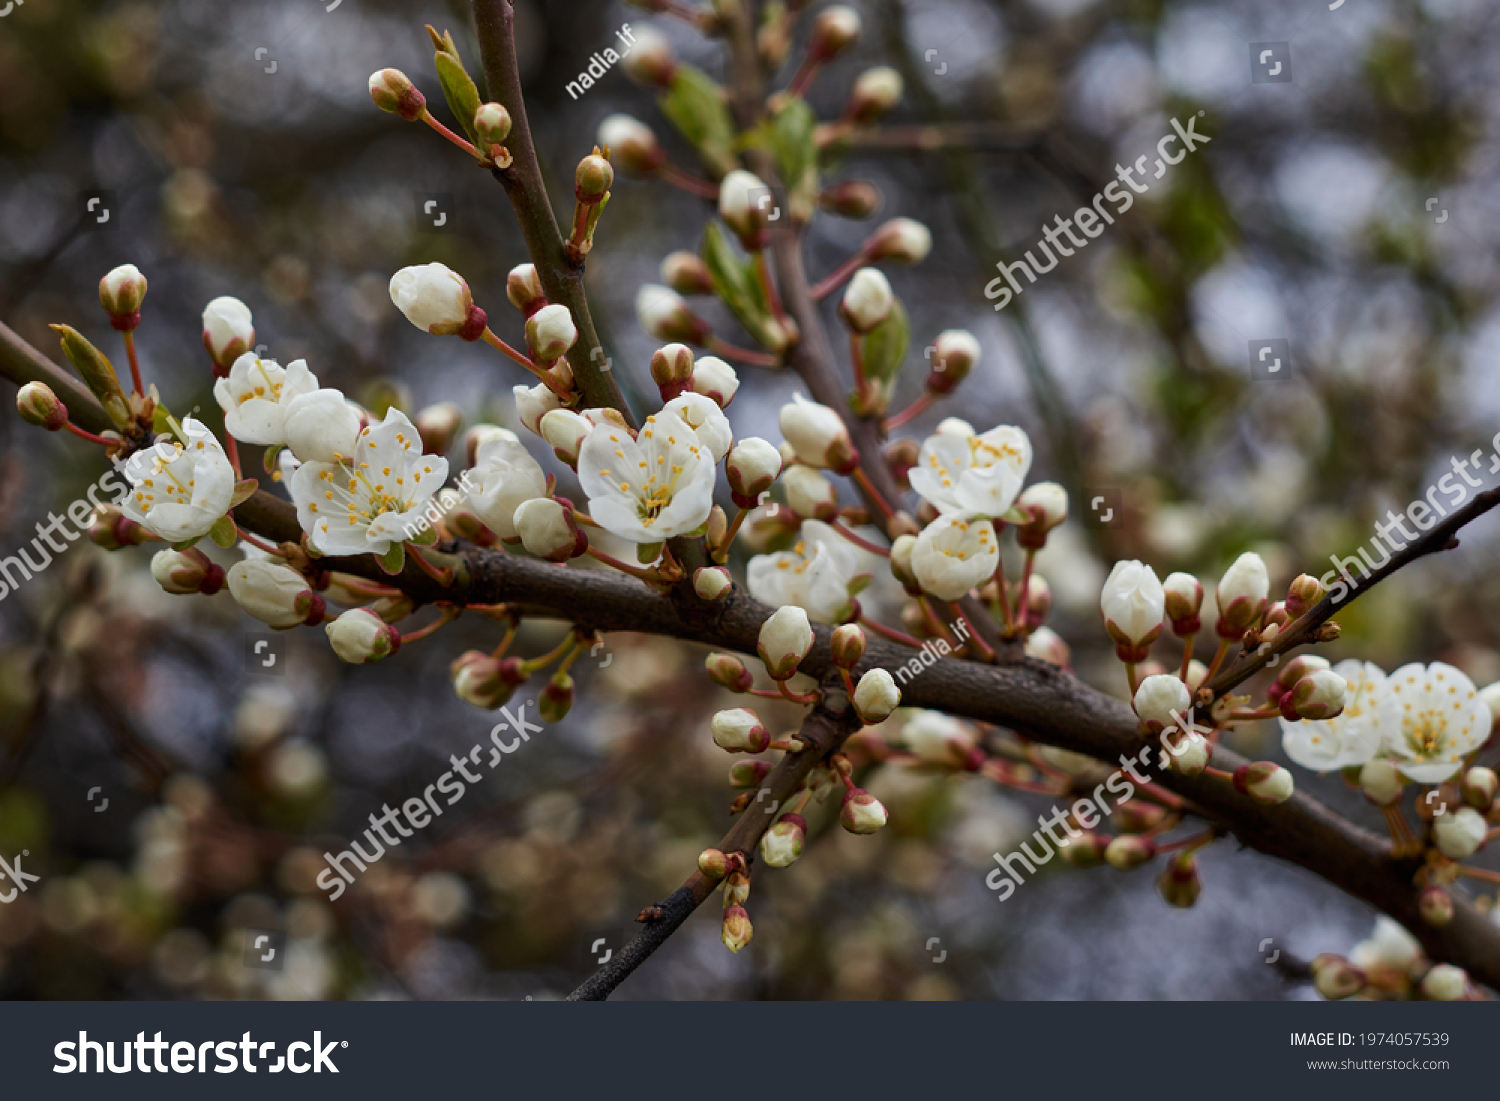 White beautiful flowers in the tree blooming in the early spring, backgroung blured. High quality photo #1974057539